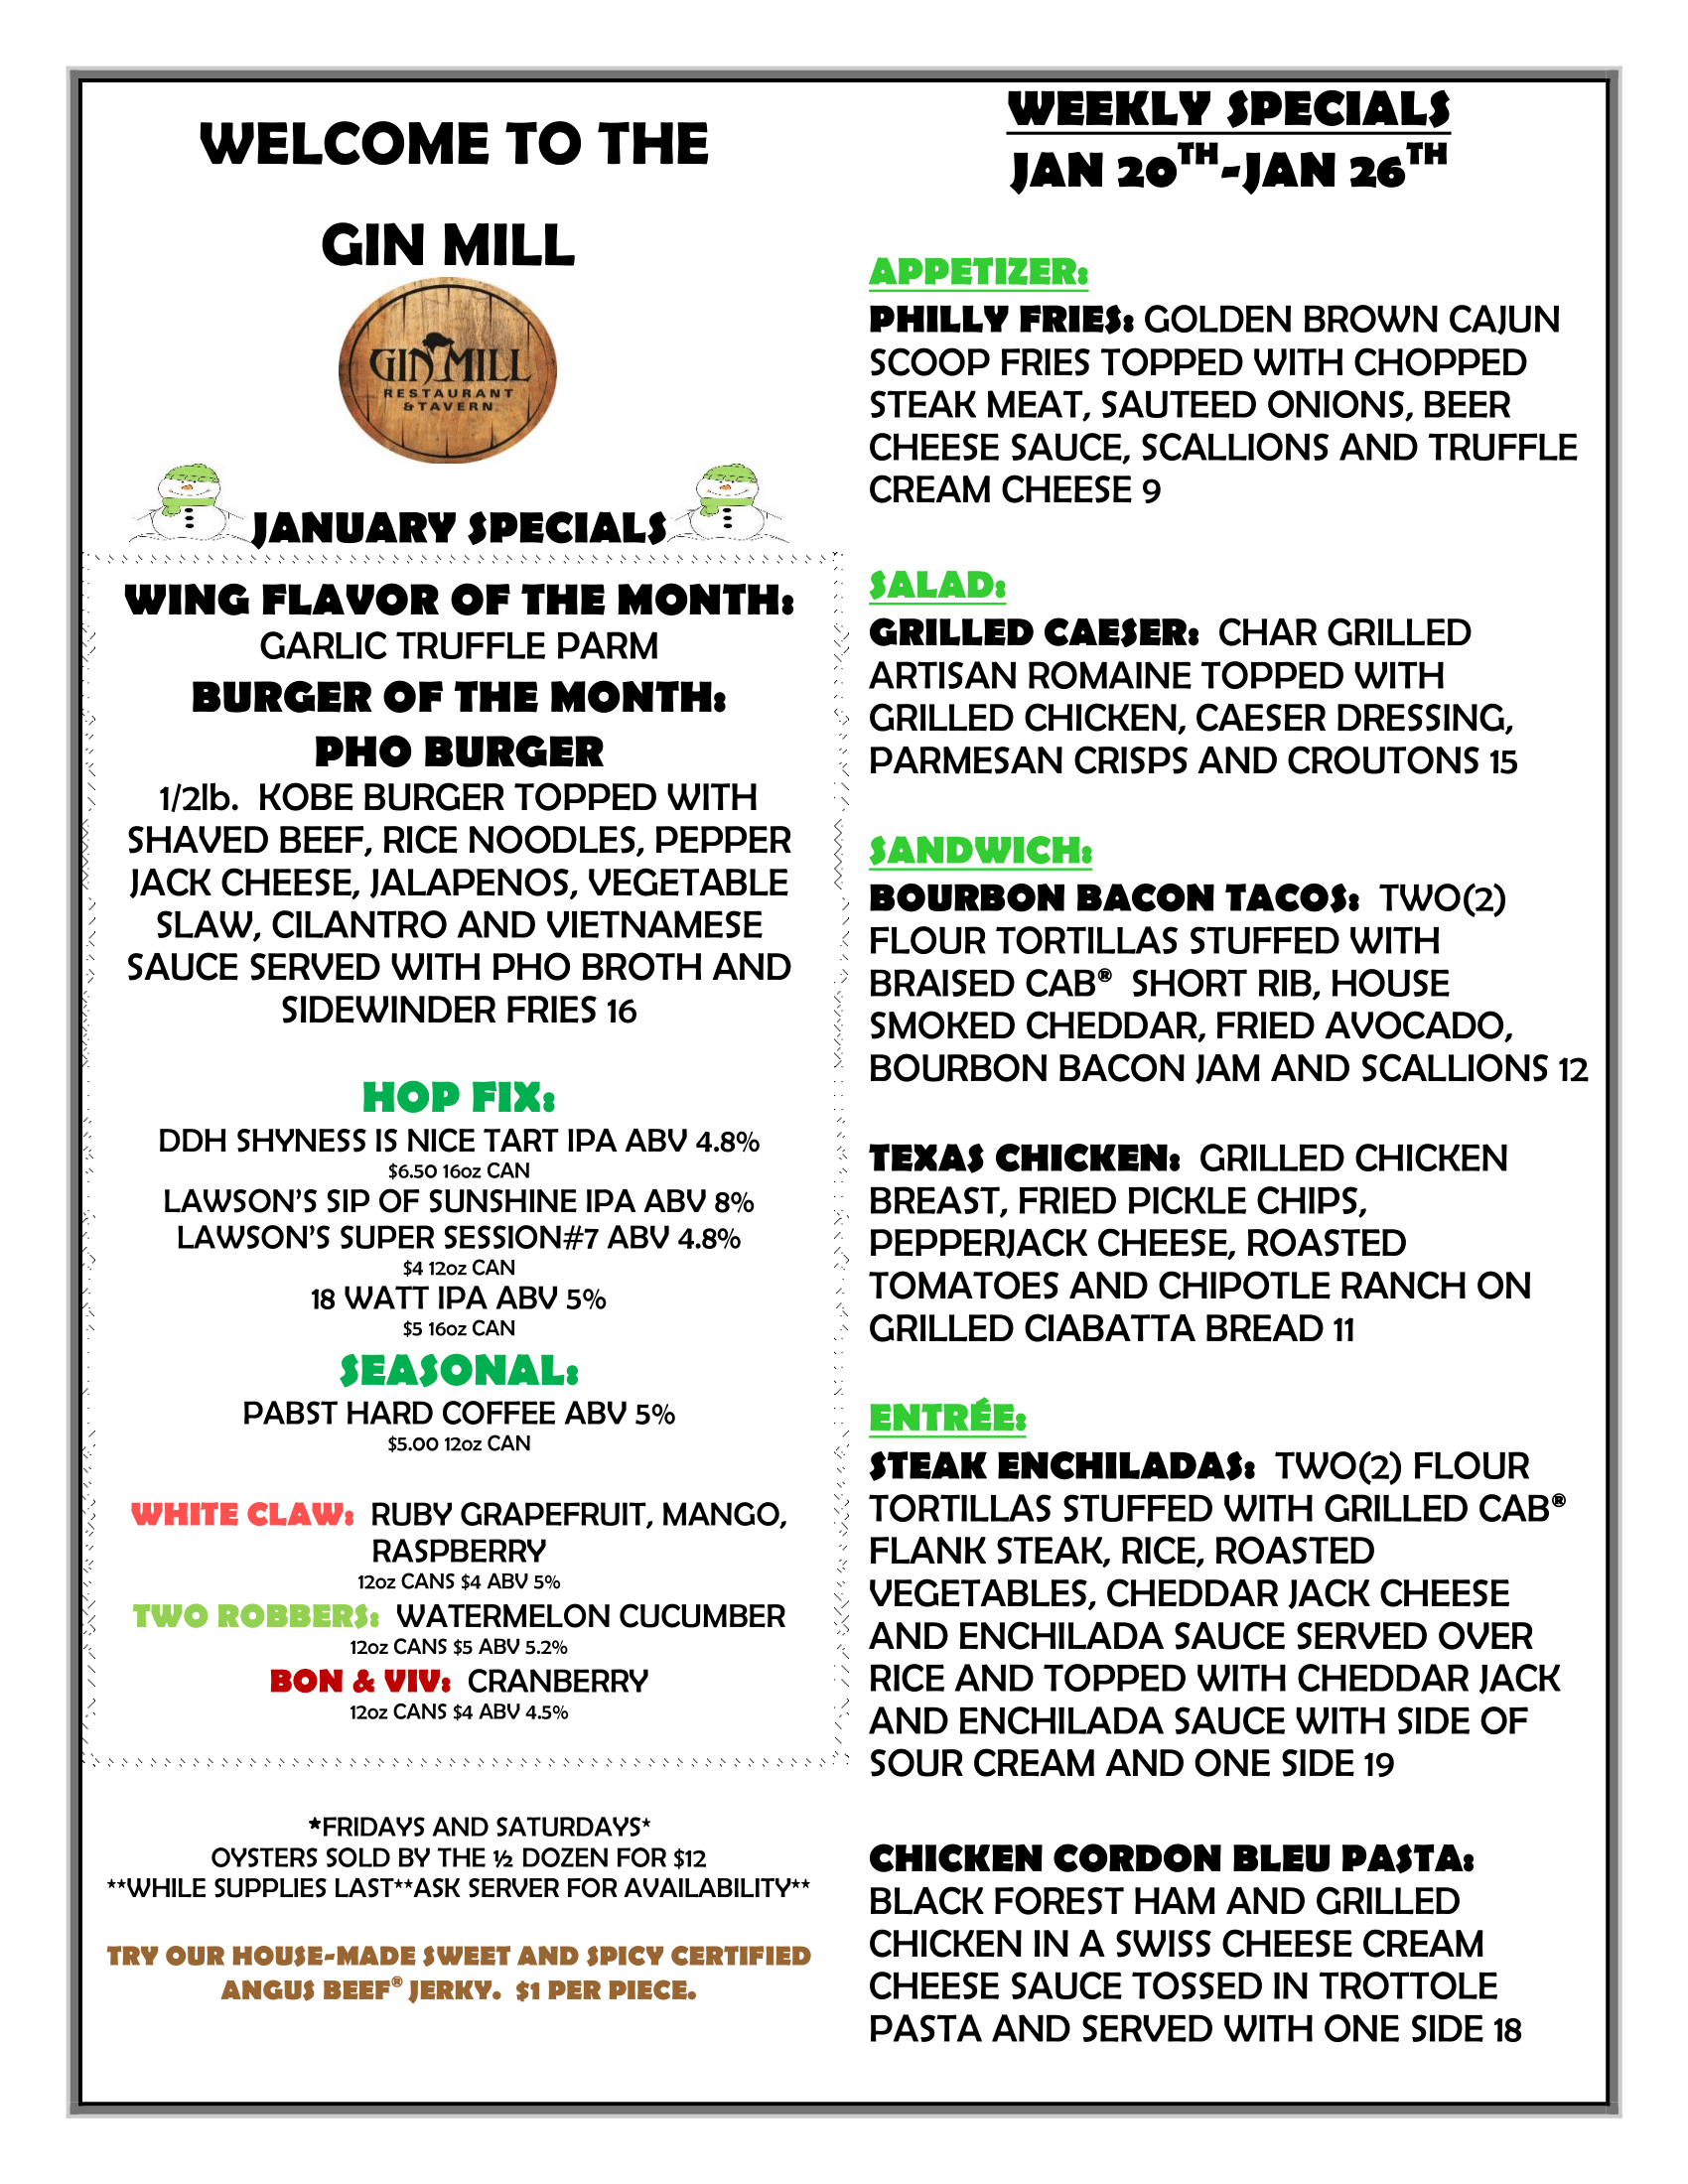 Weekly Specials : Jan 20th - Jan 26th